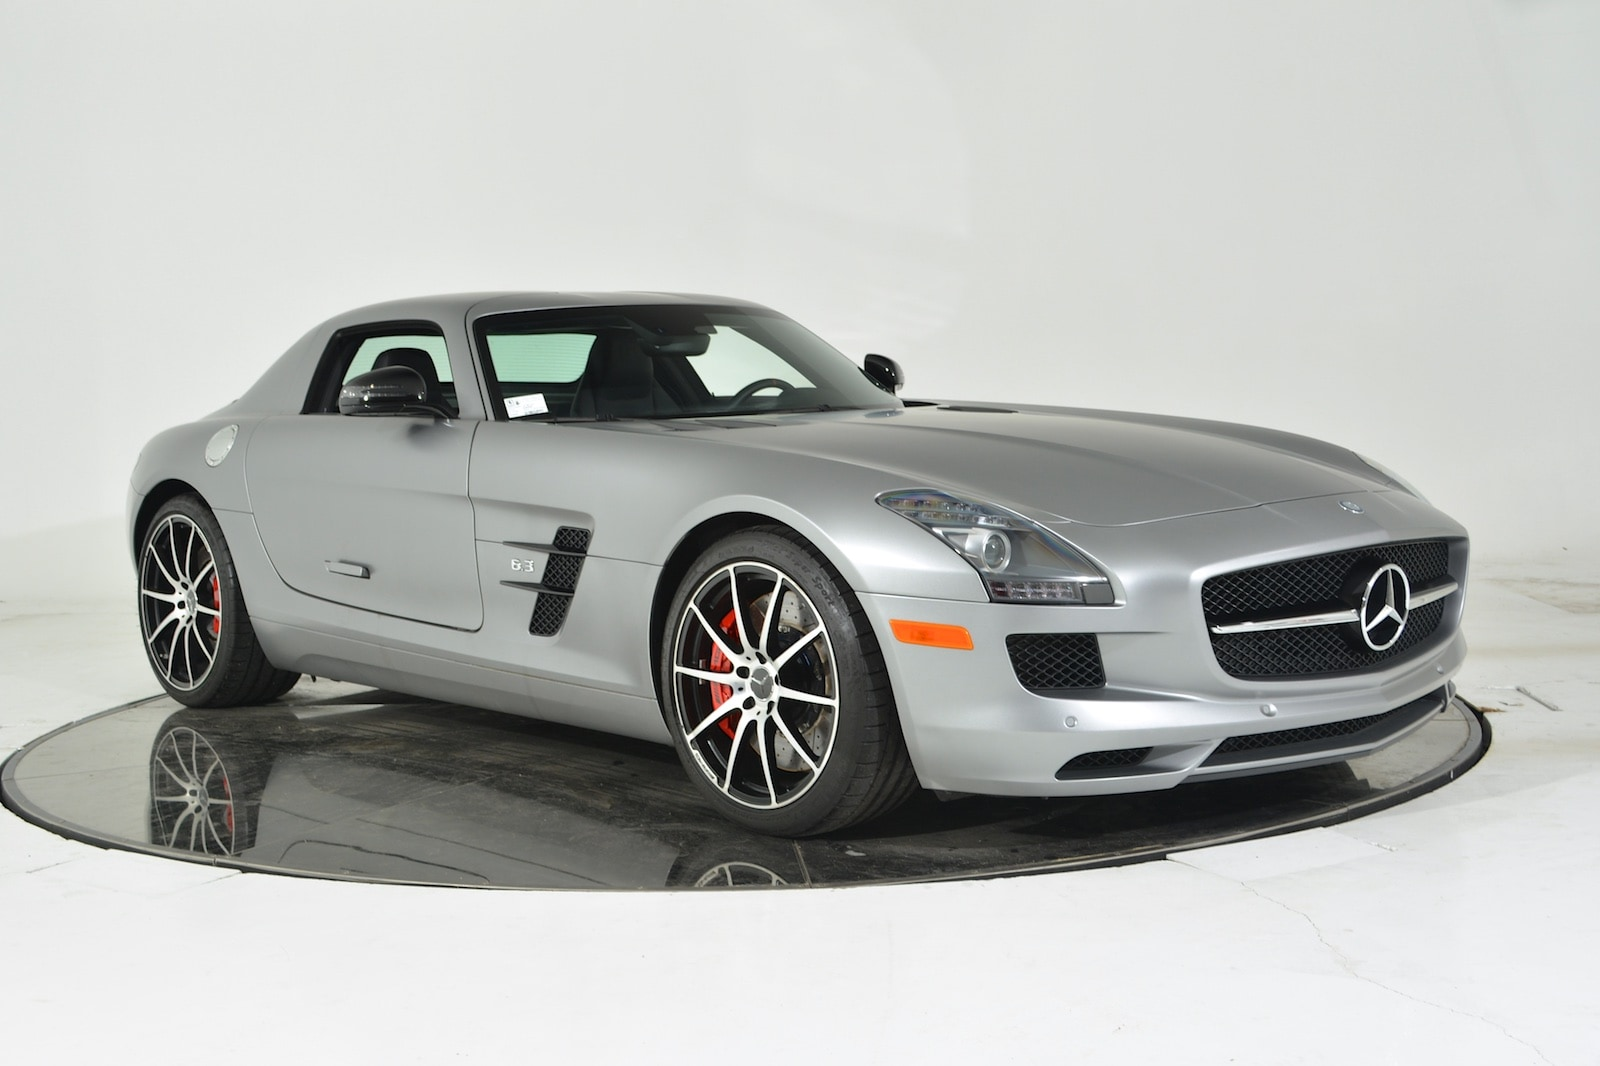 2014 mercedes benz sls amg gt coupe for sale in fort lauderdale fl at. Cars Review. Best American Auto & Cars Review